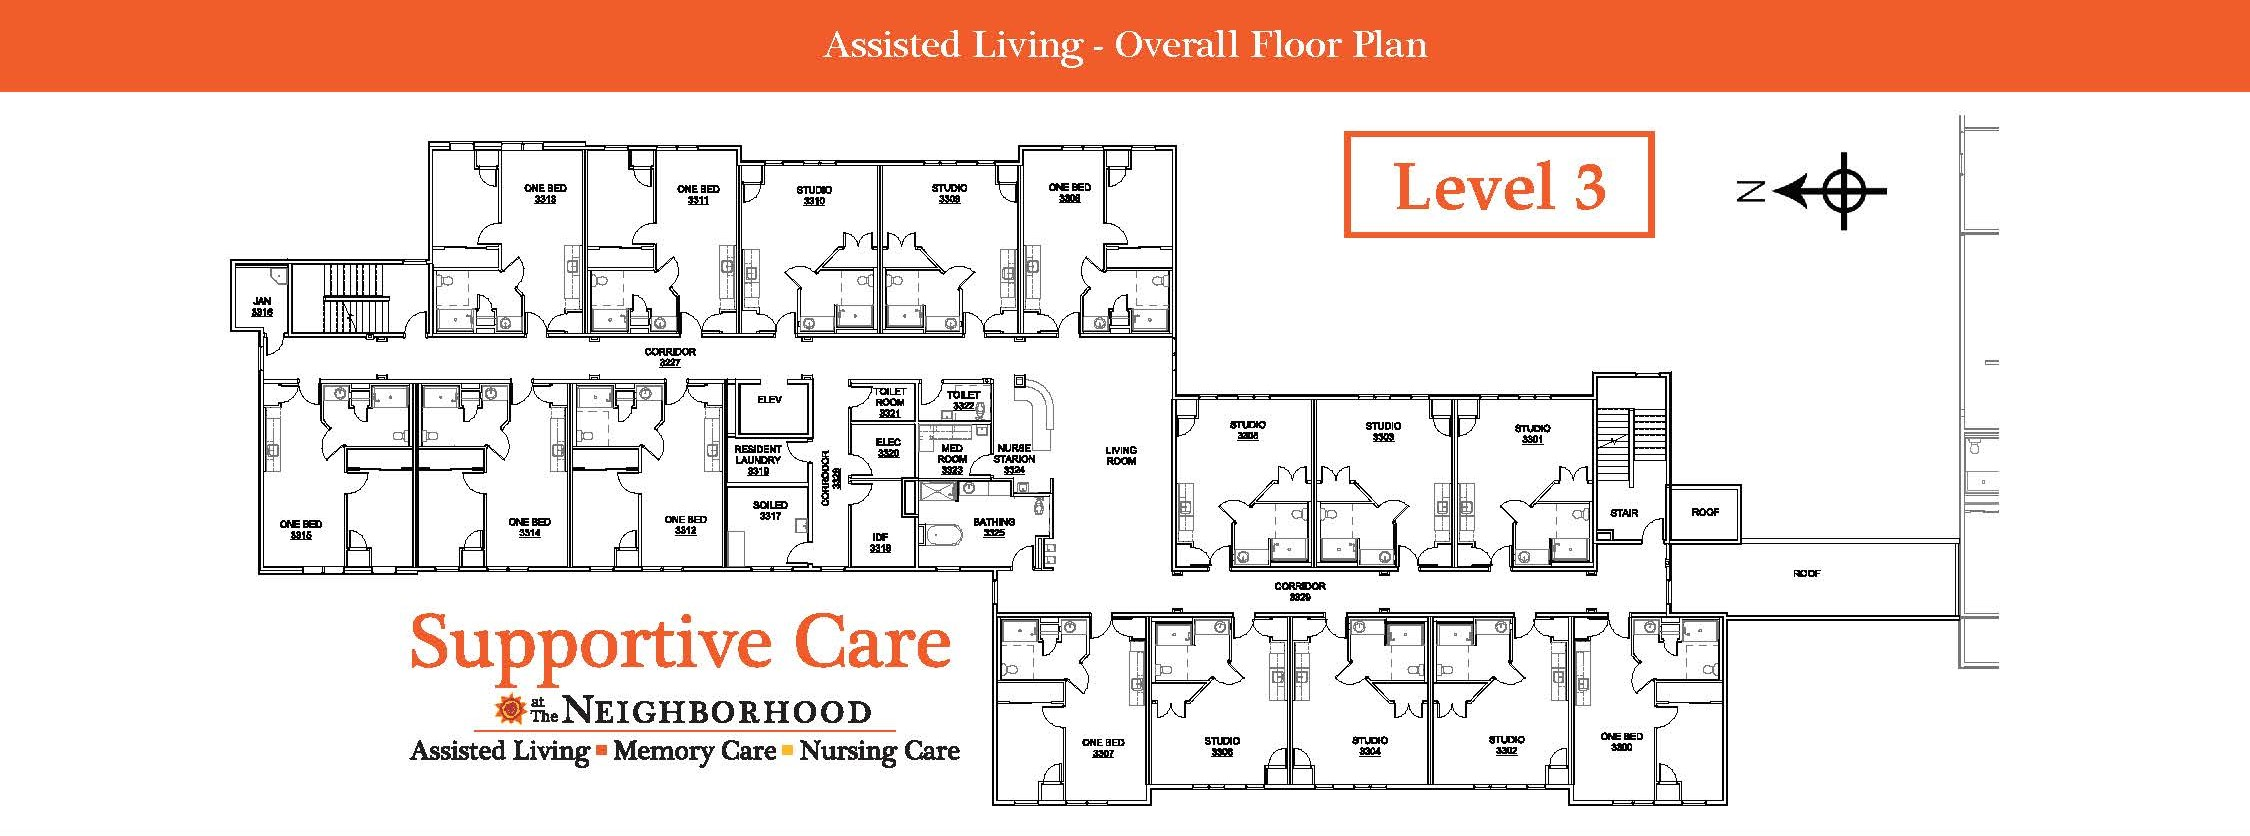 Assisted Living Level 3 Map